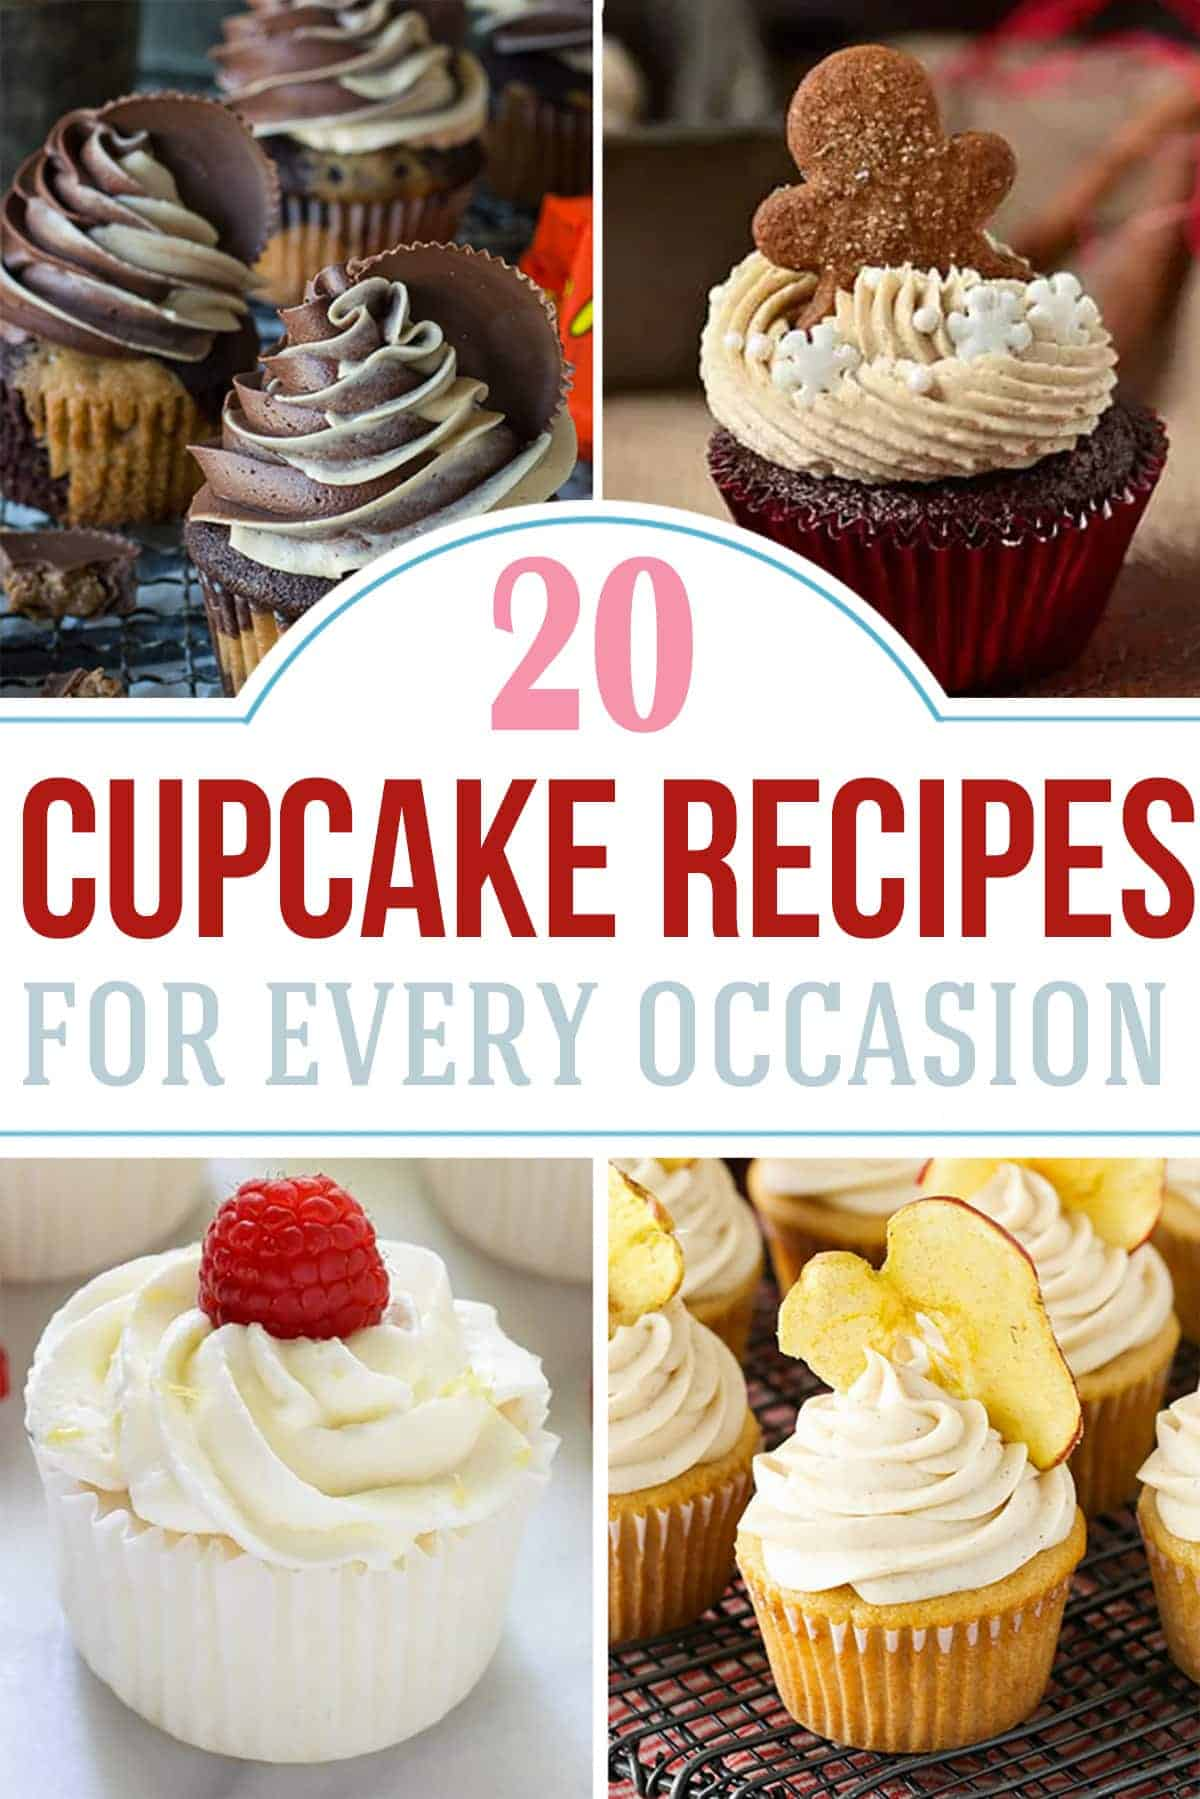 Multiple delicious and adorable cupcake recipe batches with post title